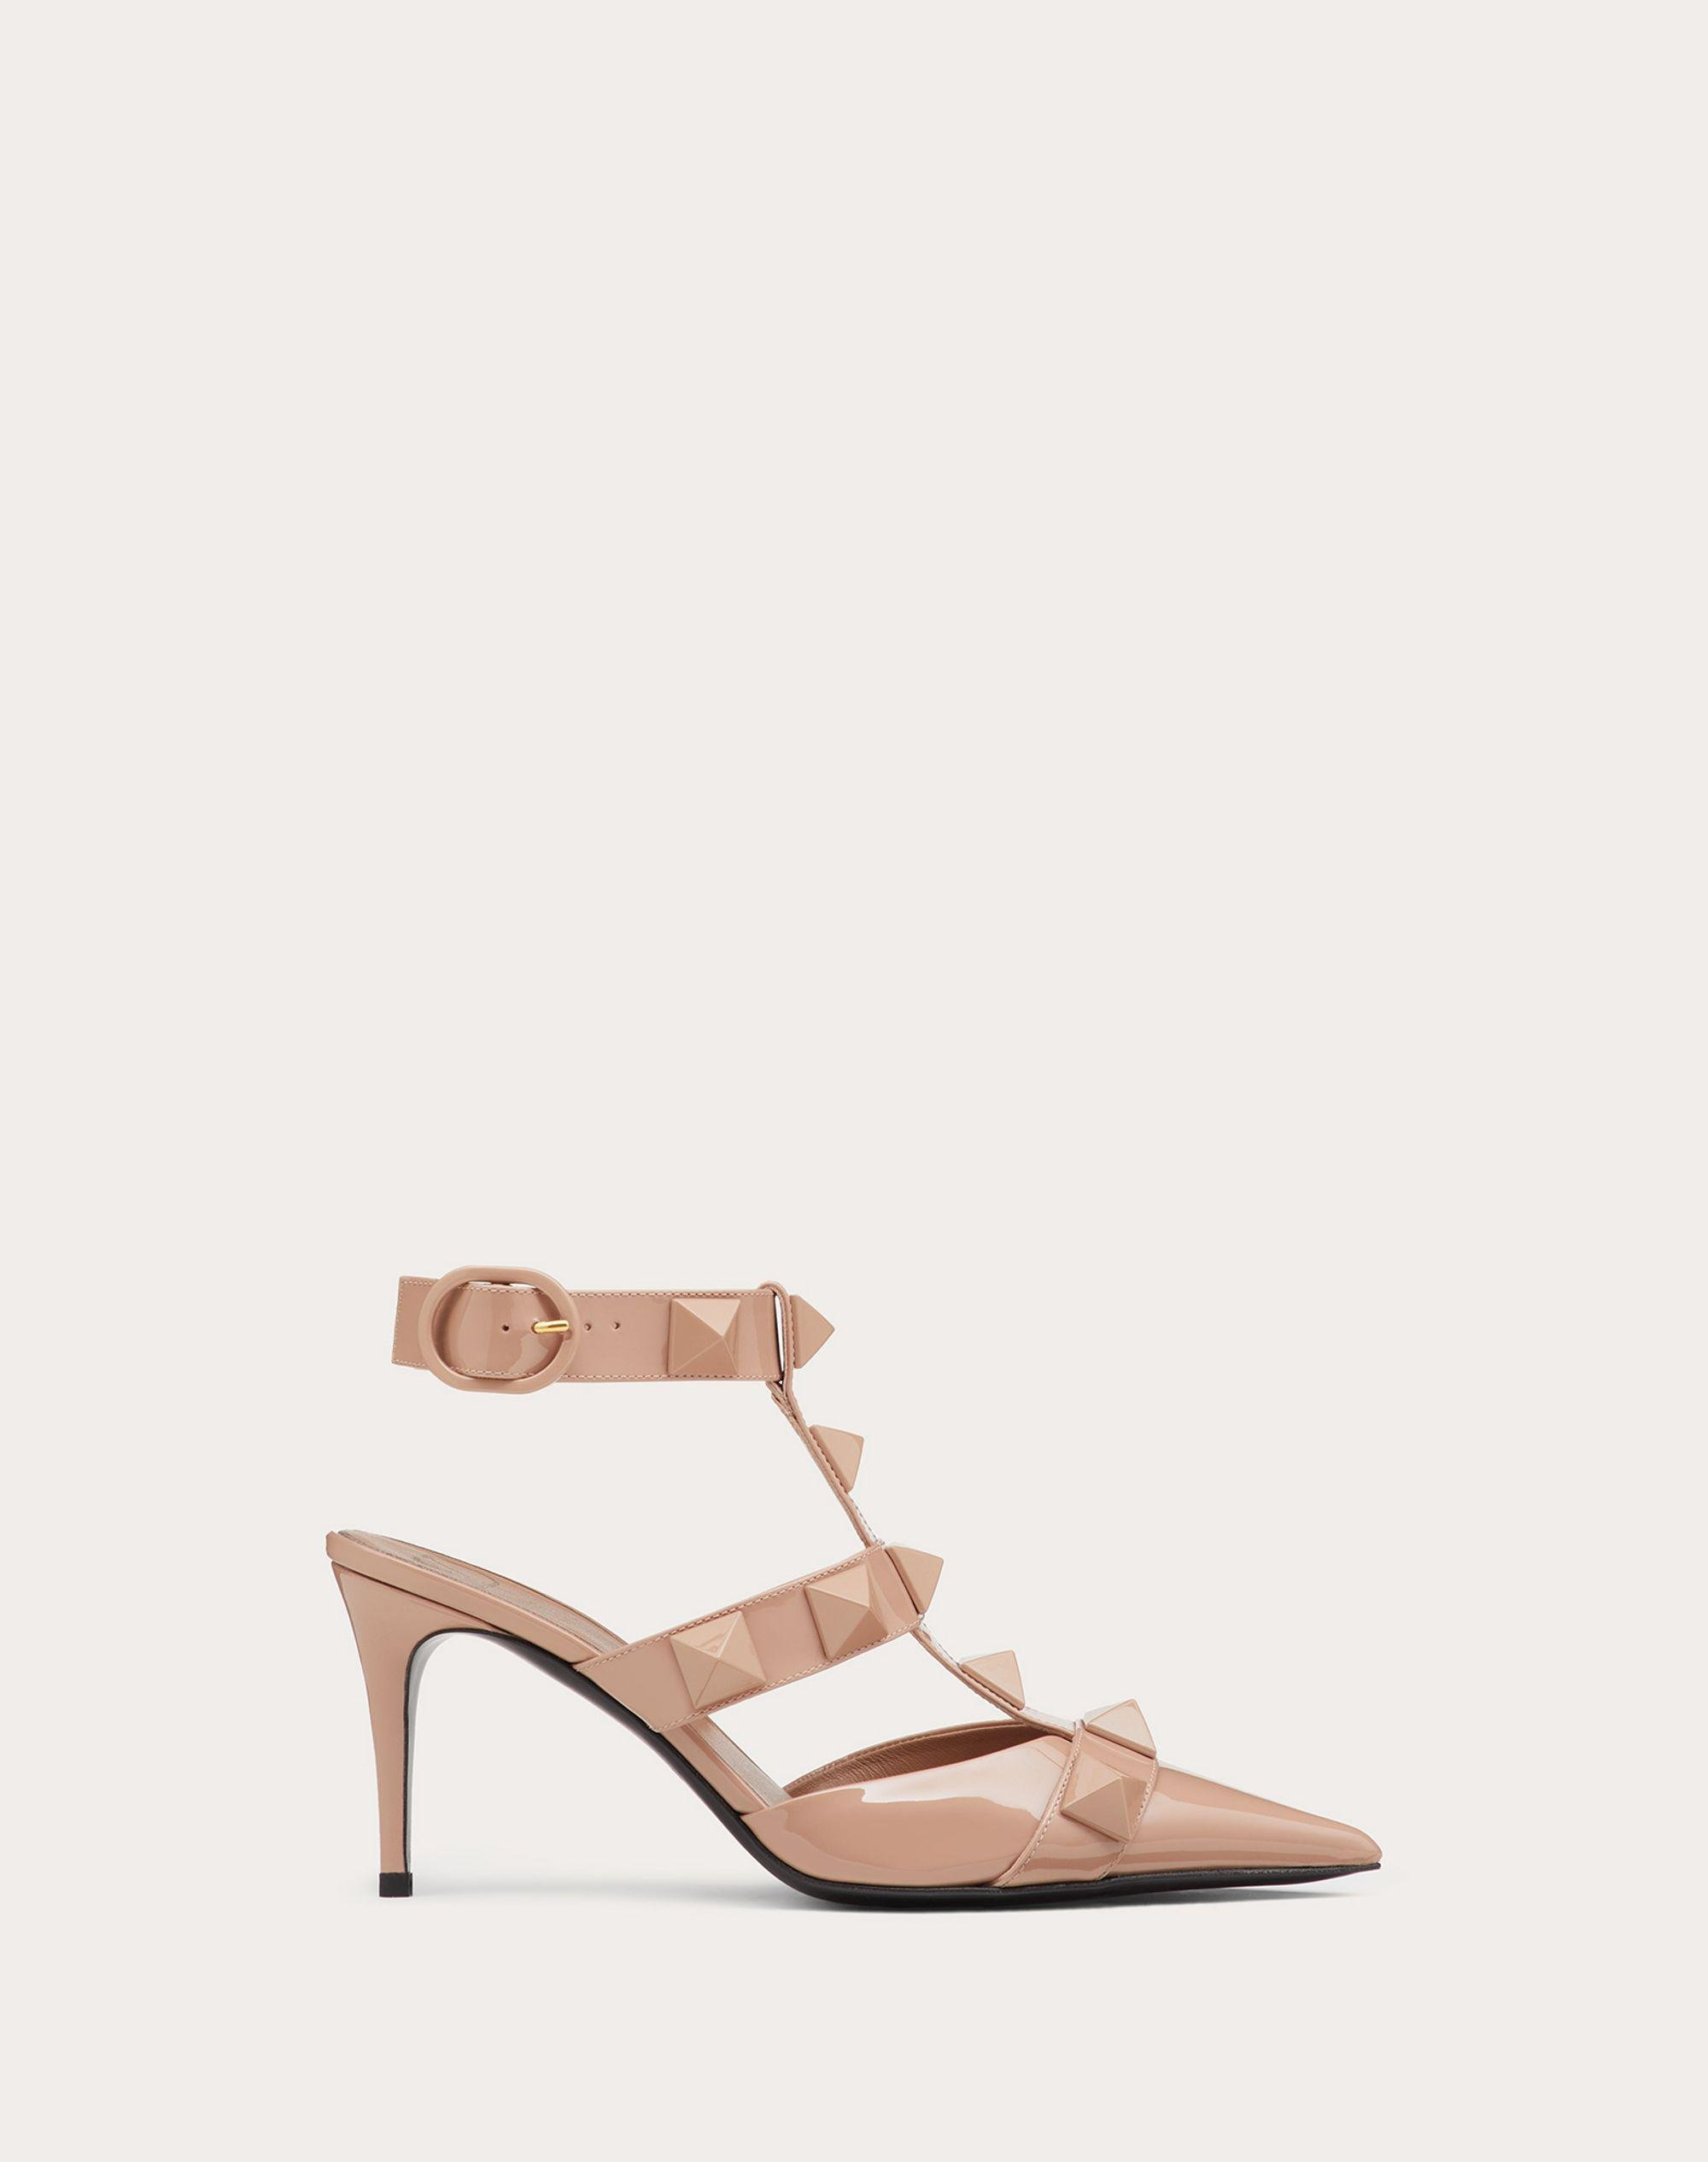 ROMAN STUD PUMP IN PATENT-LEATHER AND TONAL STUDS 80MM